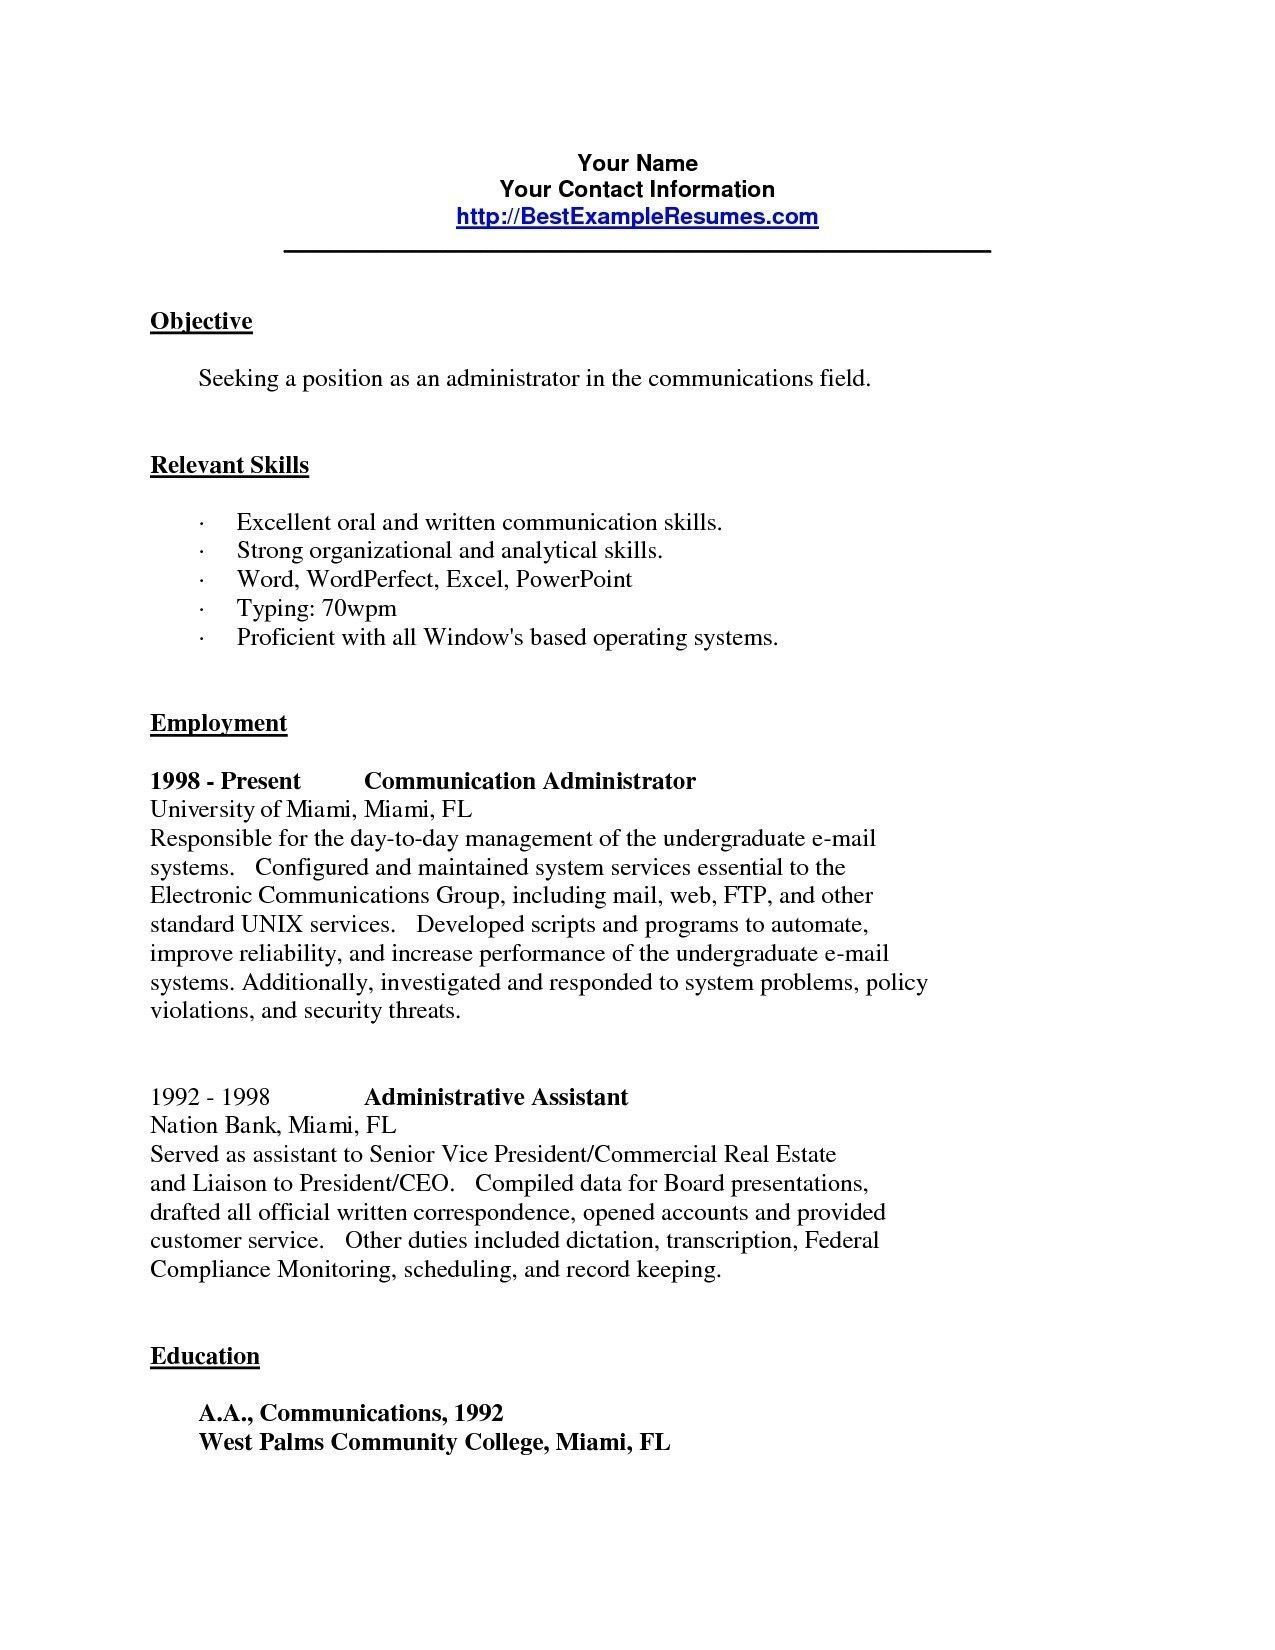 Communication Example For Resume In 2021 Resume Skills Good Communication Skills Communication Skills